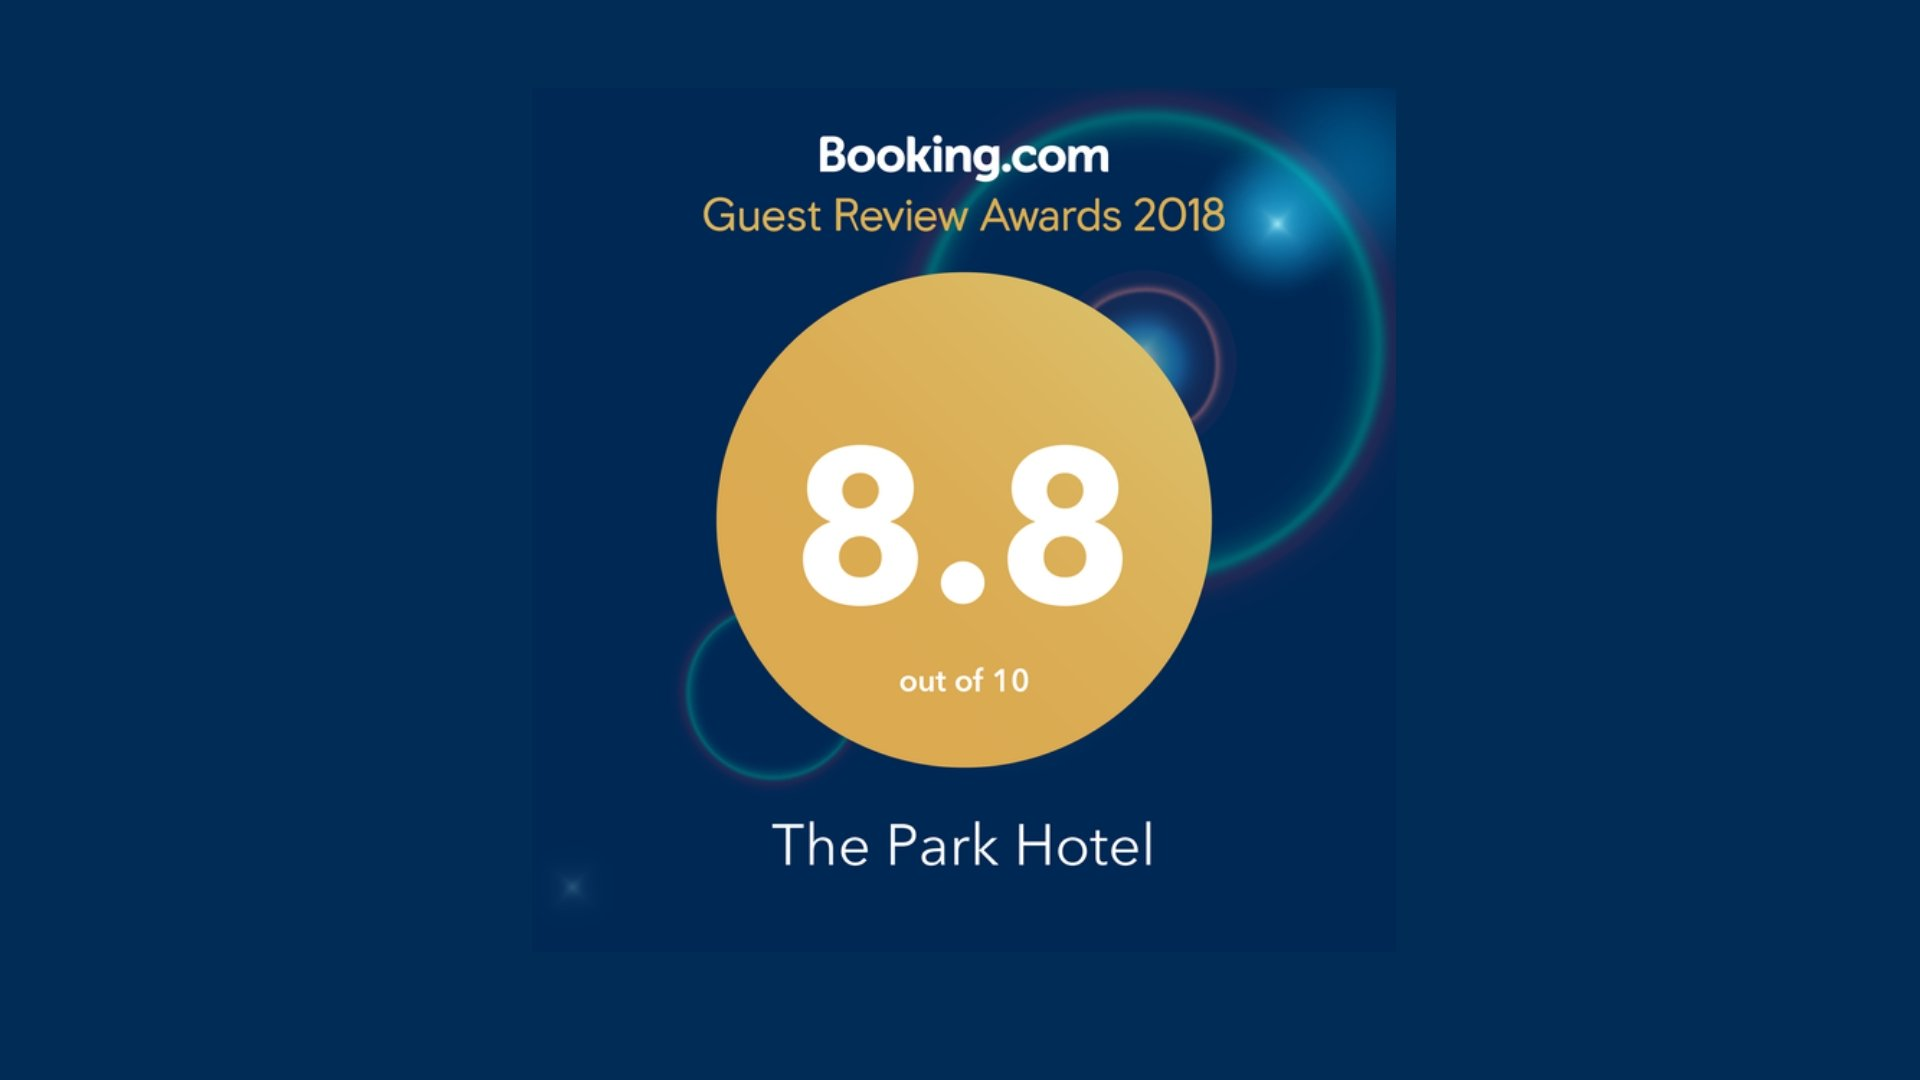 Booking.com 2018 Guest Review Awards